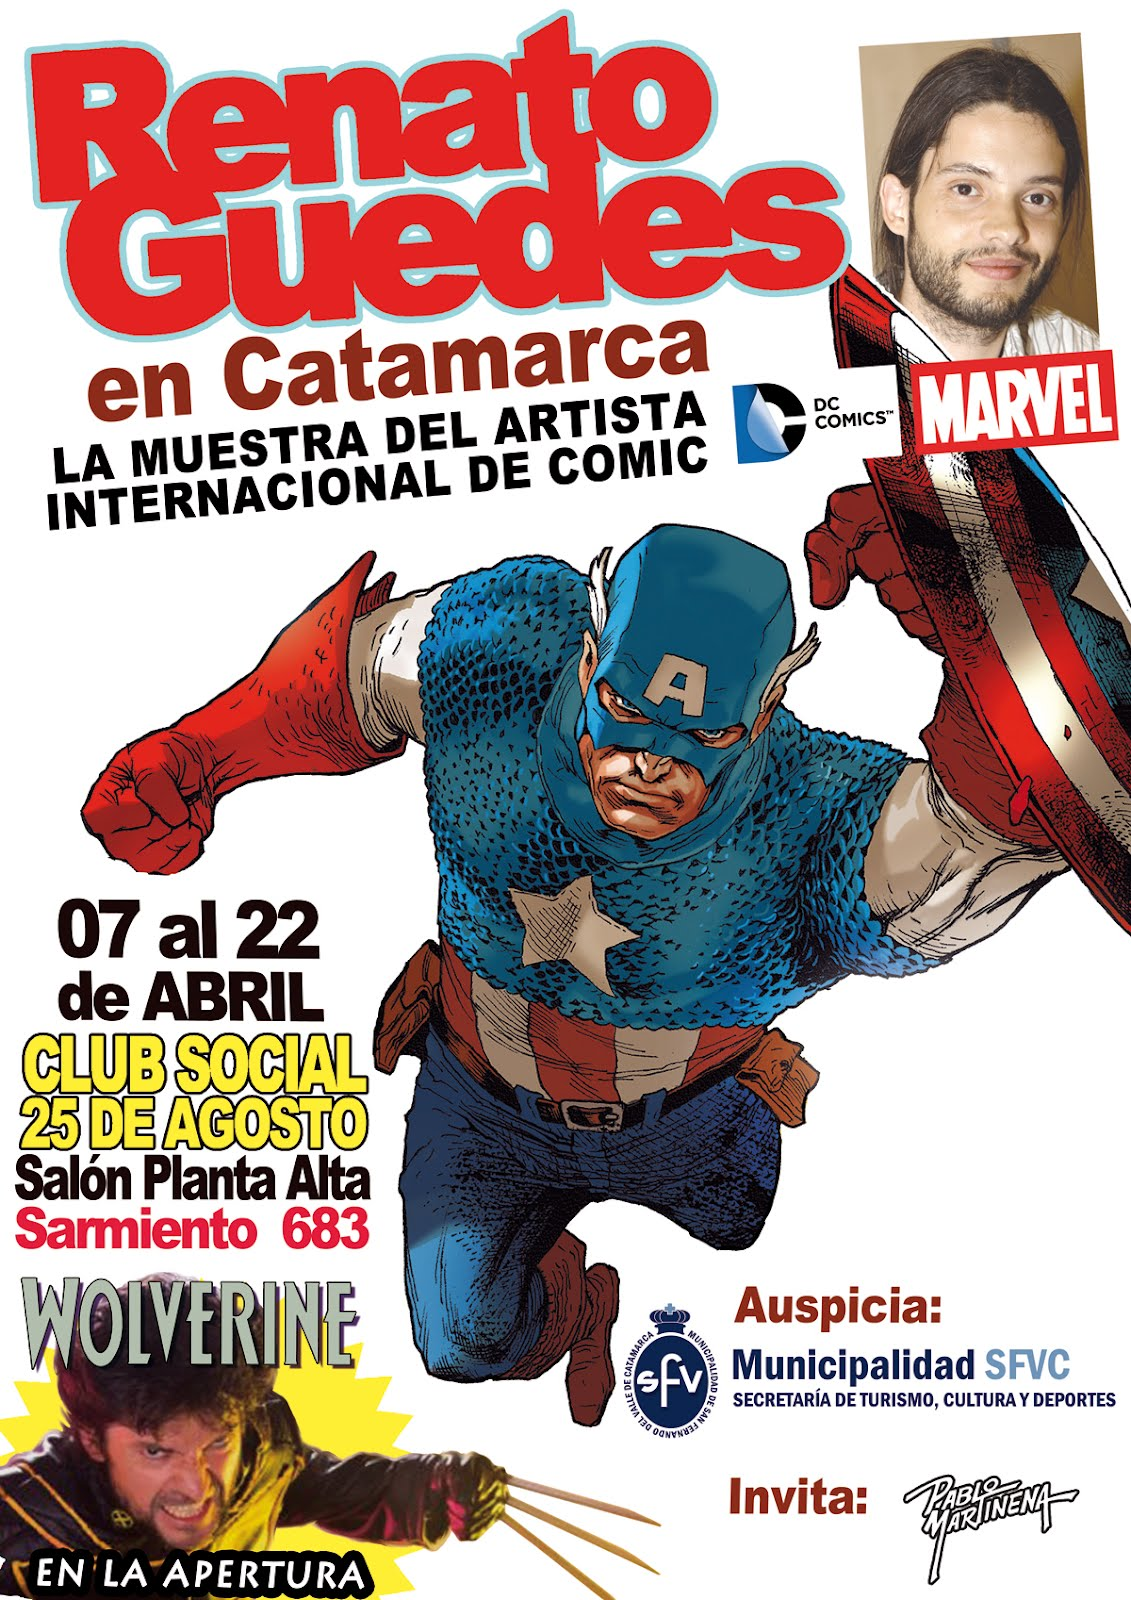 Pablo martinena marzo 2012 for Javier paredes wolverine